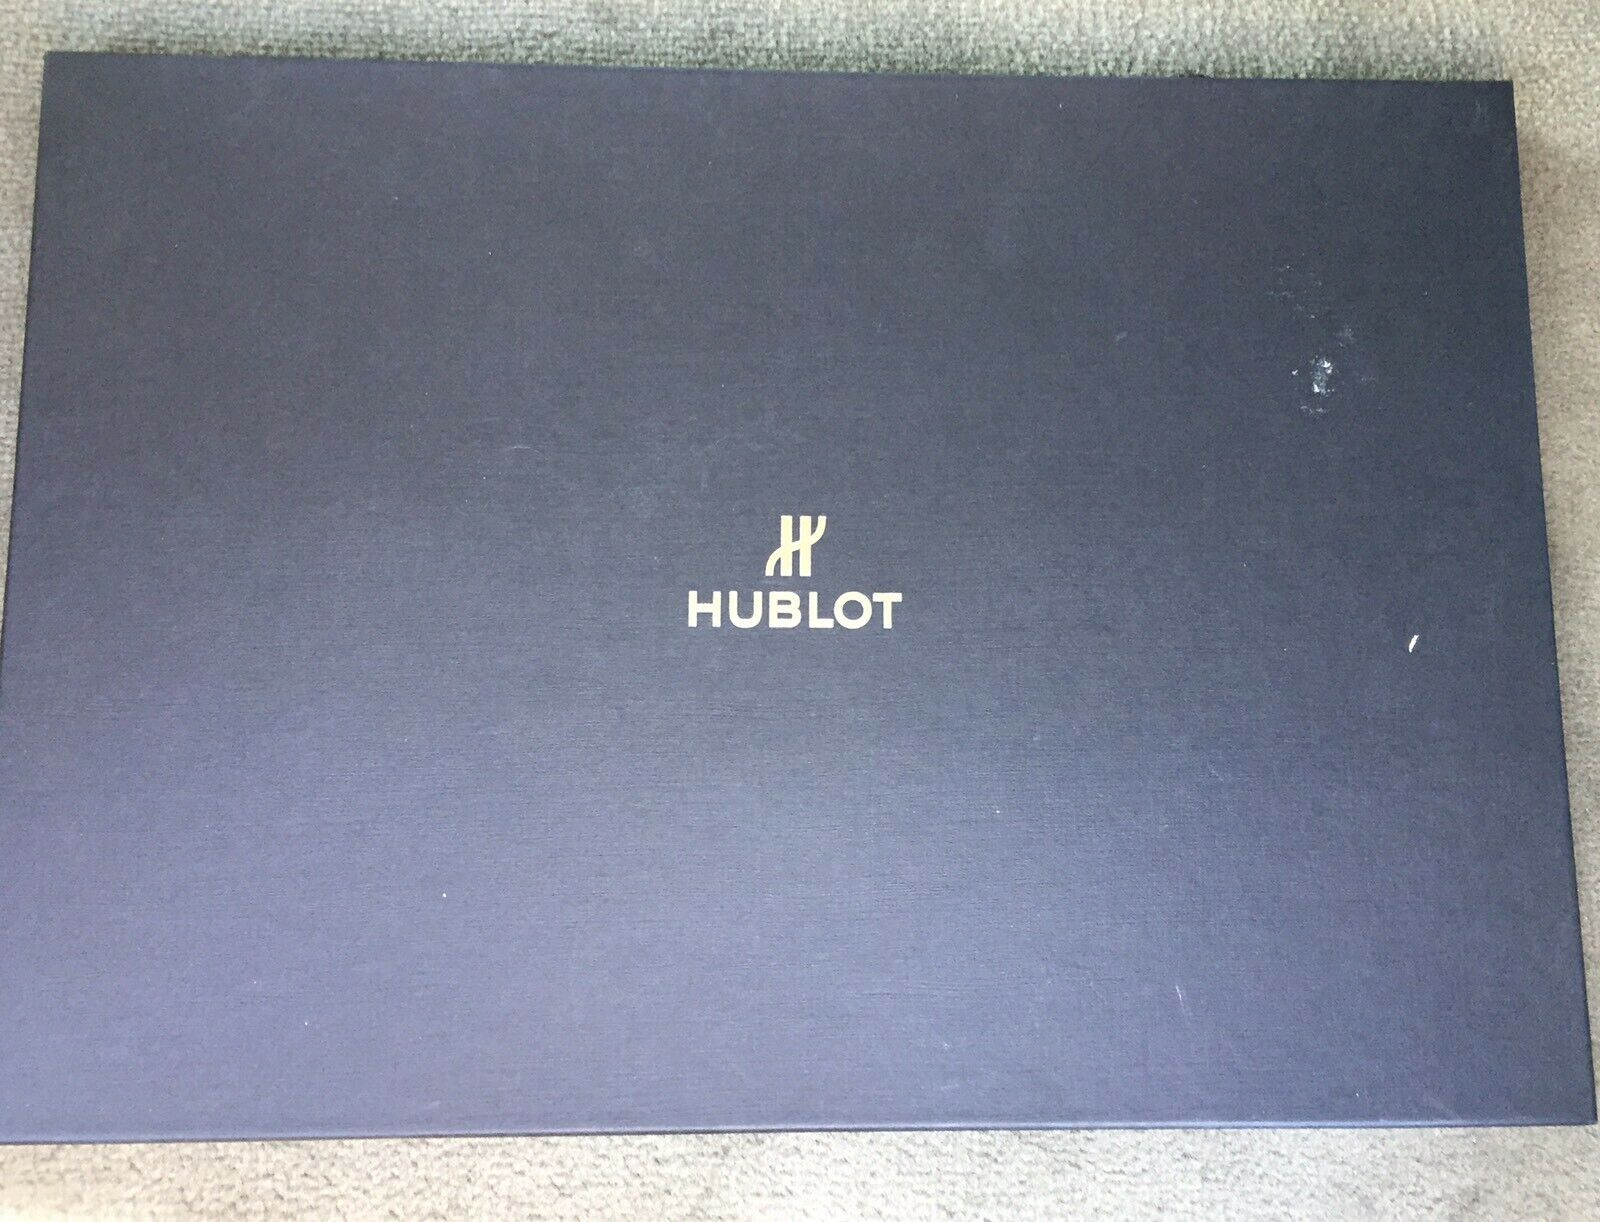 Hublot Cheese Board Cutting Board